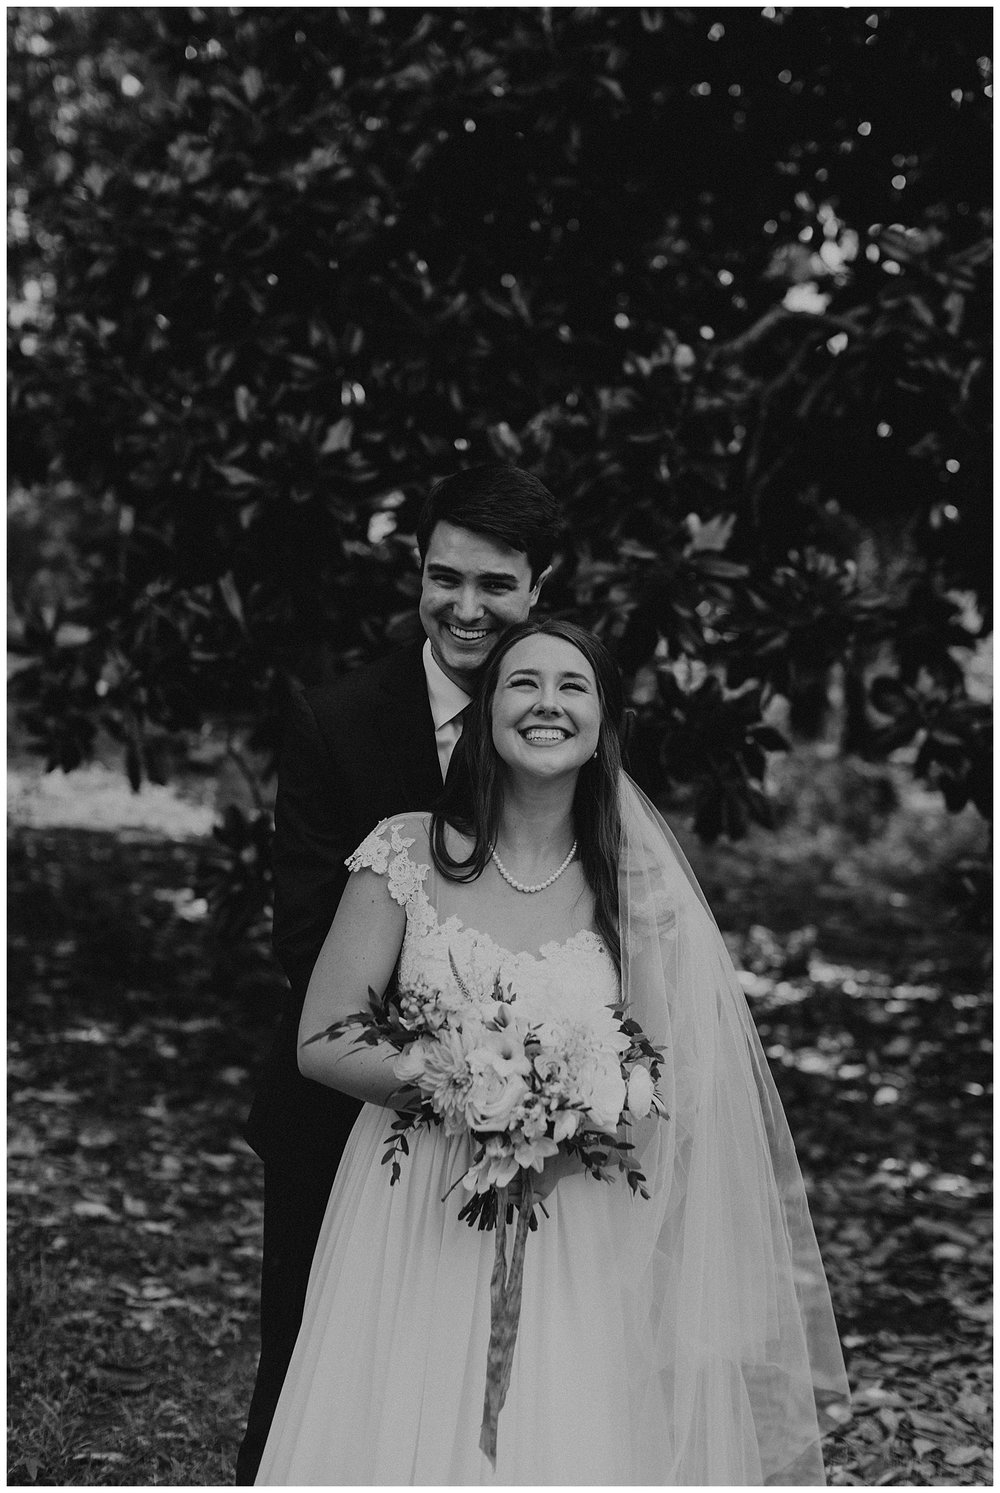 Madalynn Young Photography | Sarah Catherine + Will | Bridge Street Gallery and Loft | Atlanta Wedding Photographer_0180.jpg